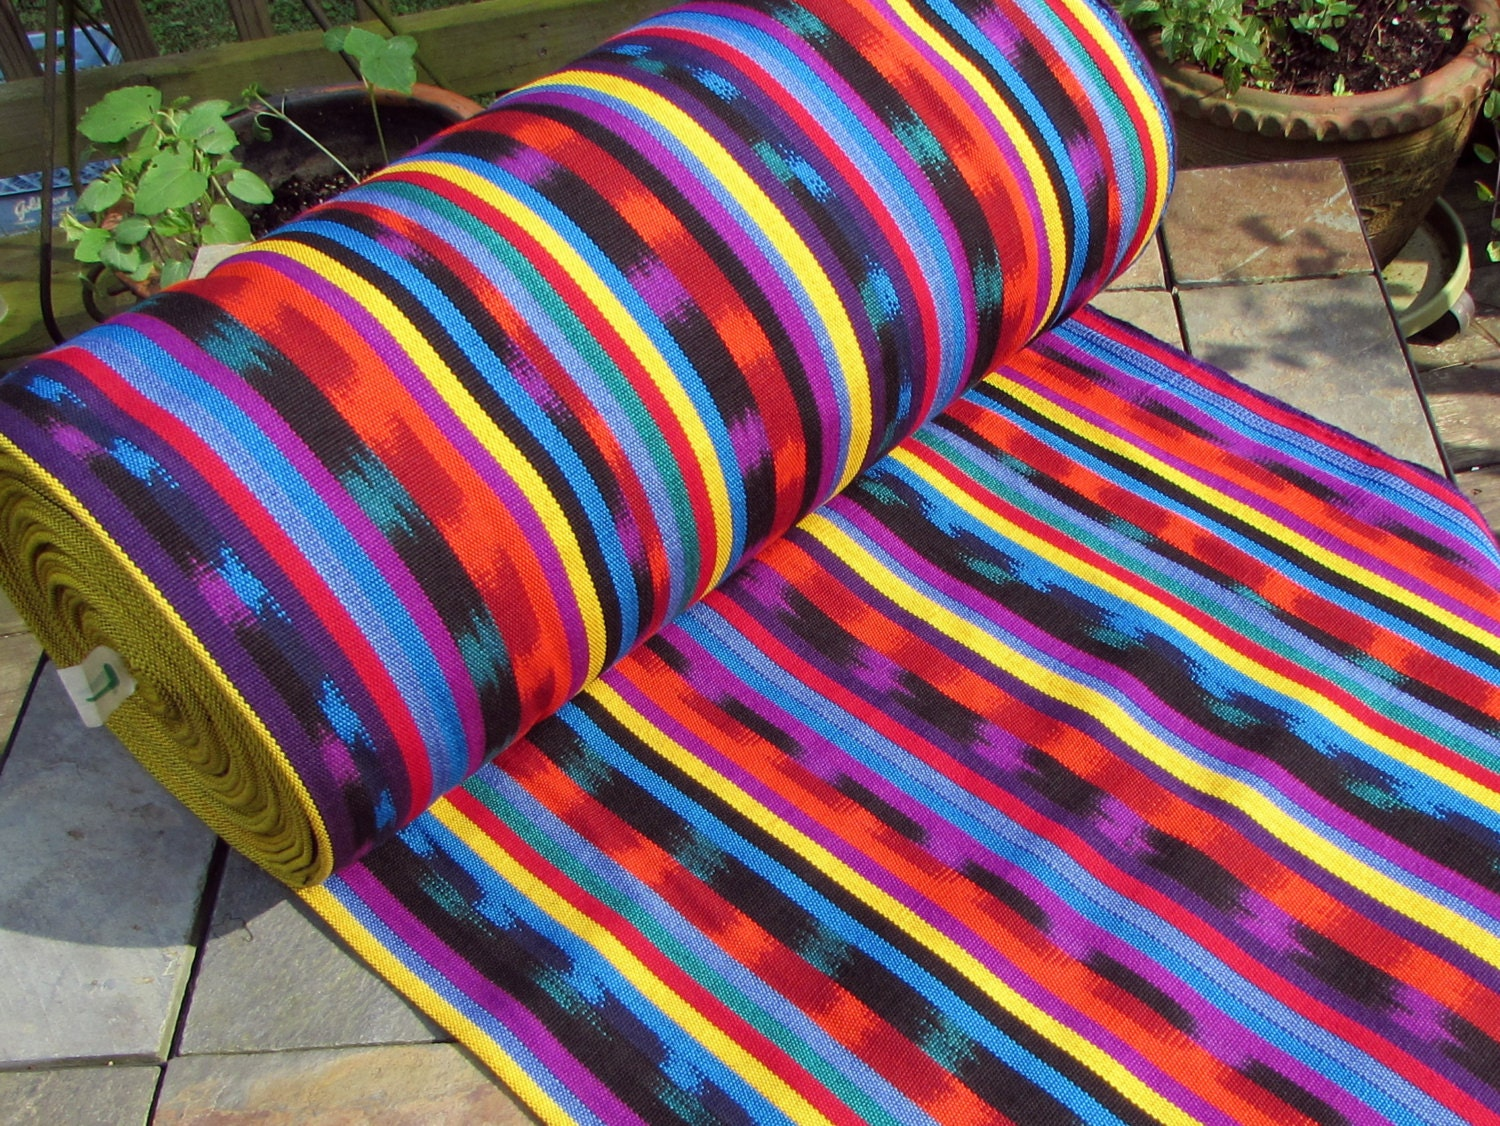 Guatemalan Ikat Fabric In Primary Colors